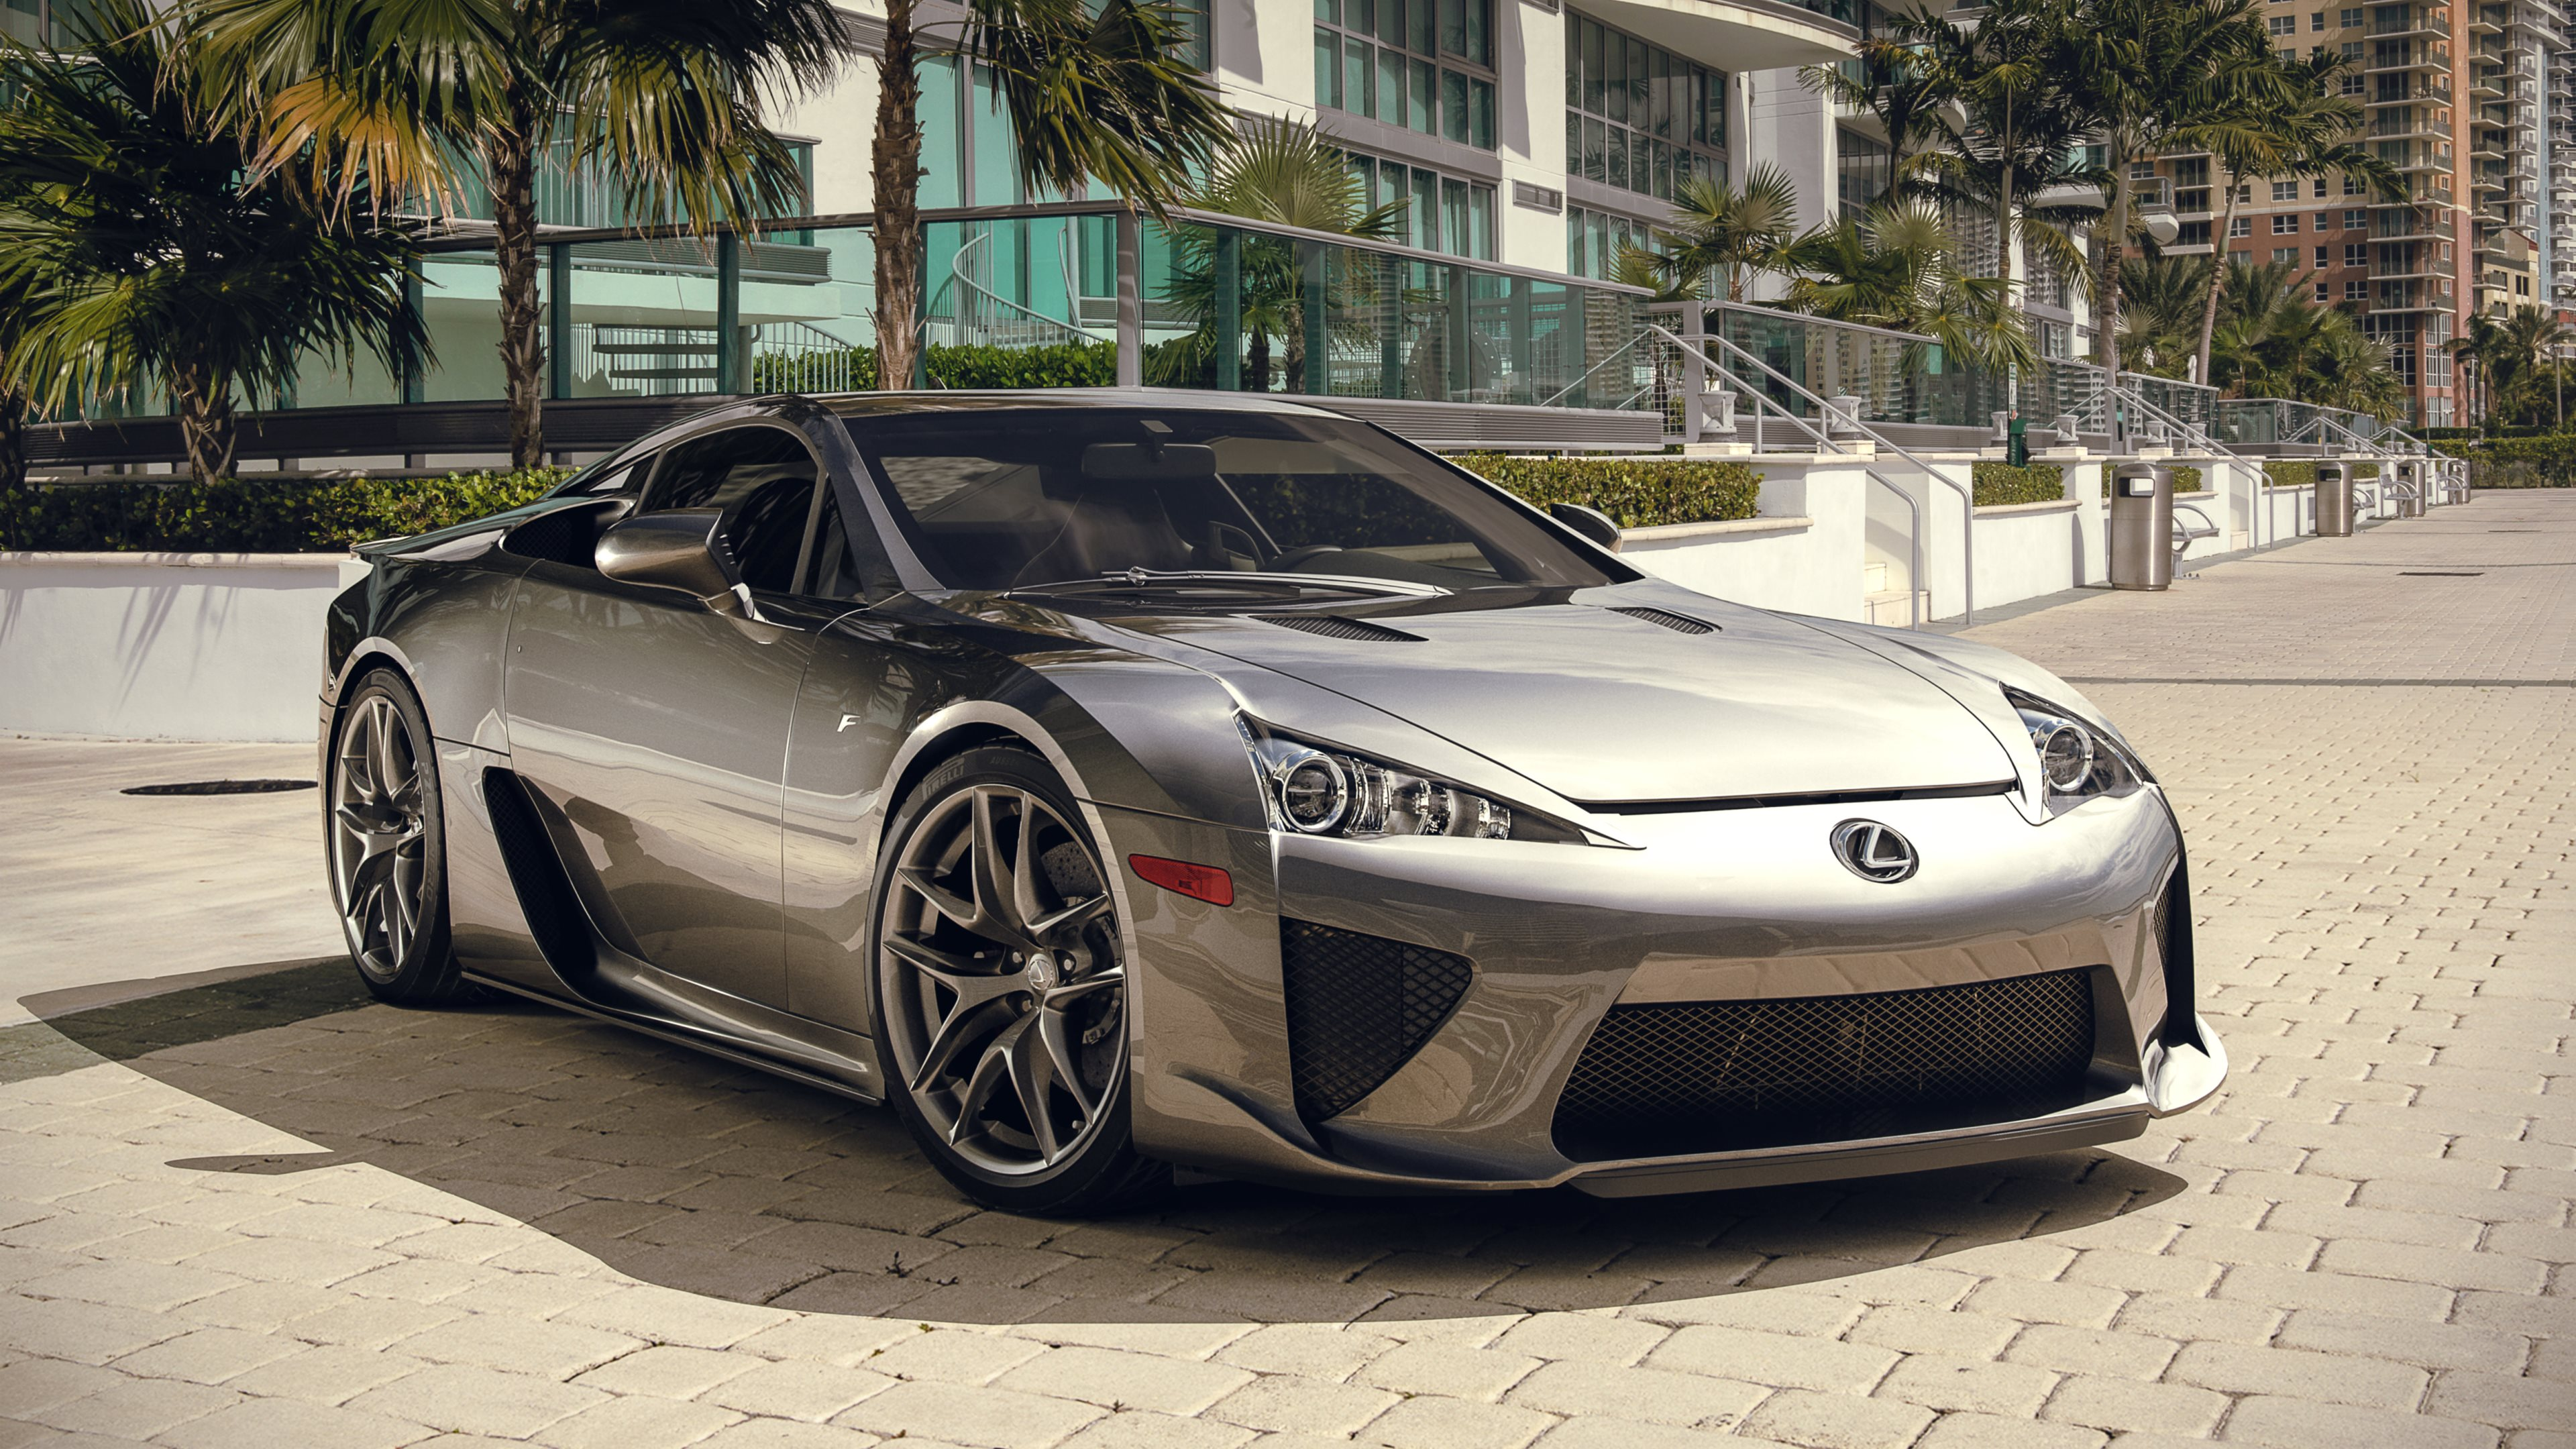 lexus lfa super car 4k. Black Bedroom Furniture Sets. Home Design Ideas